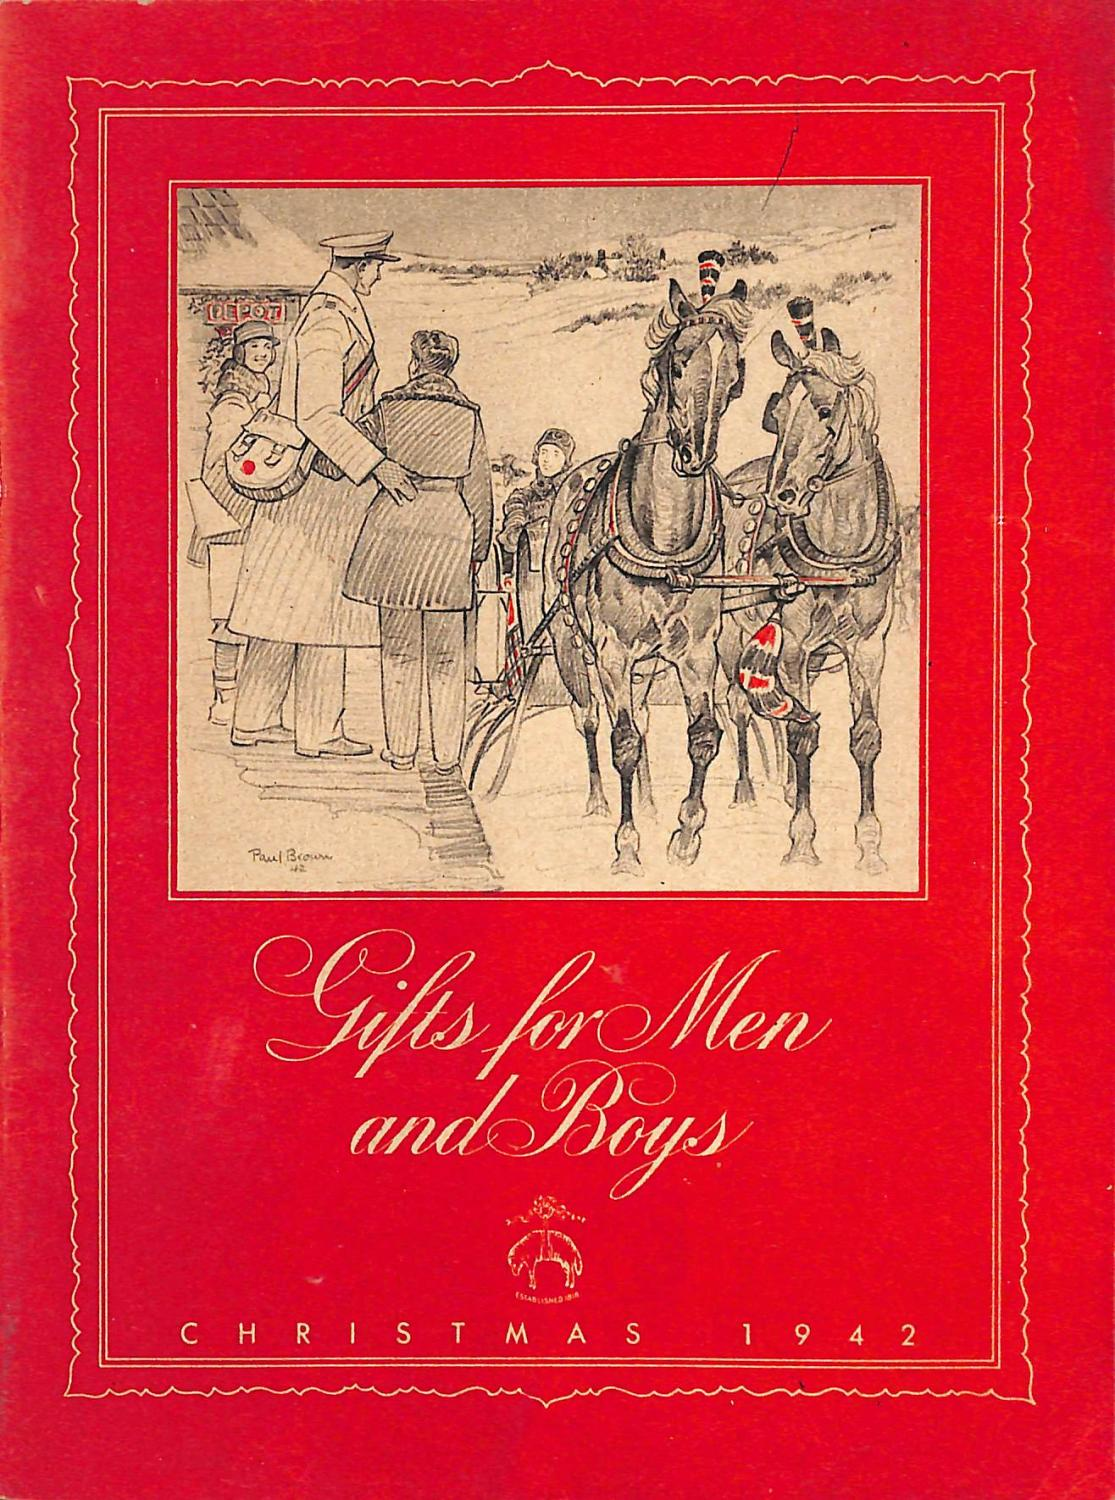 Gifts_for_Men_and_Boys;_Christmas_1942___[_]